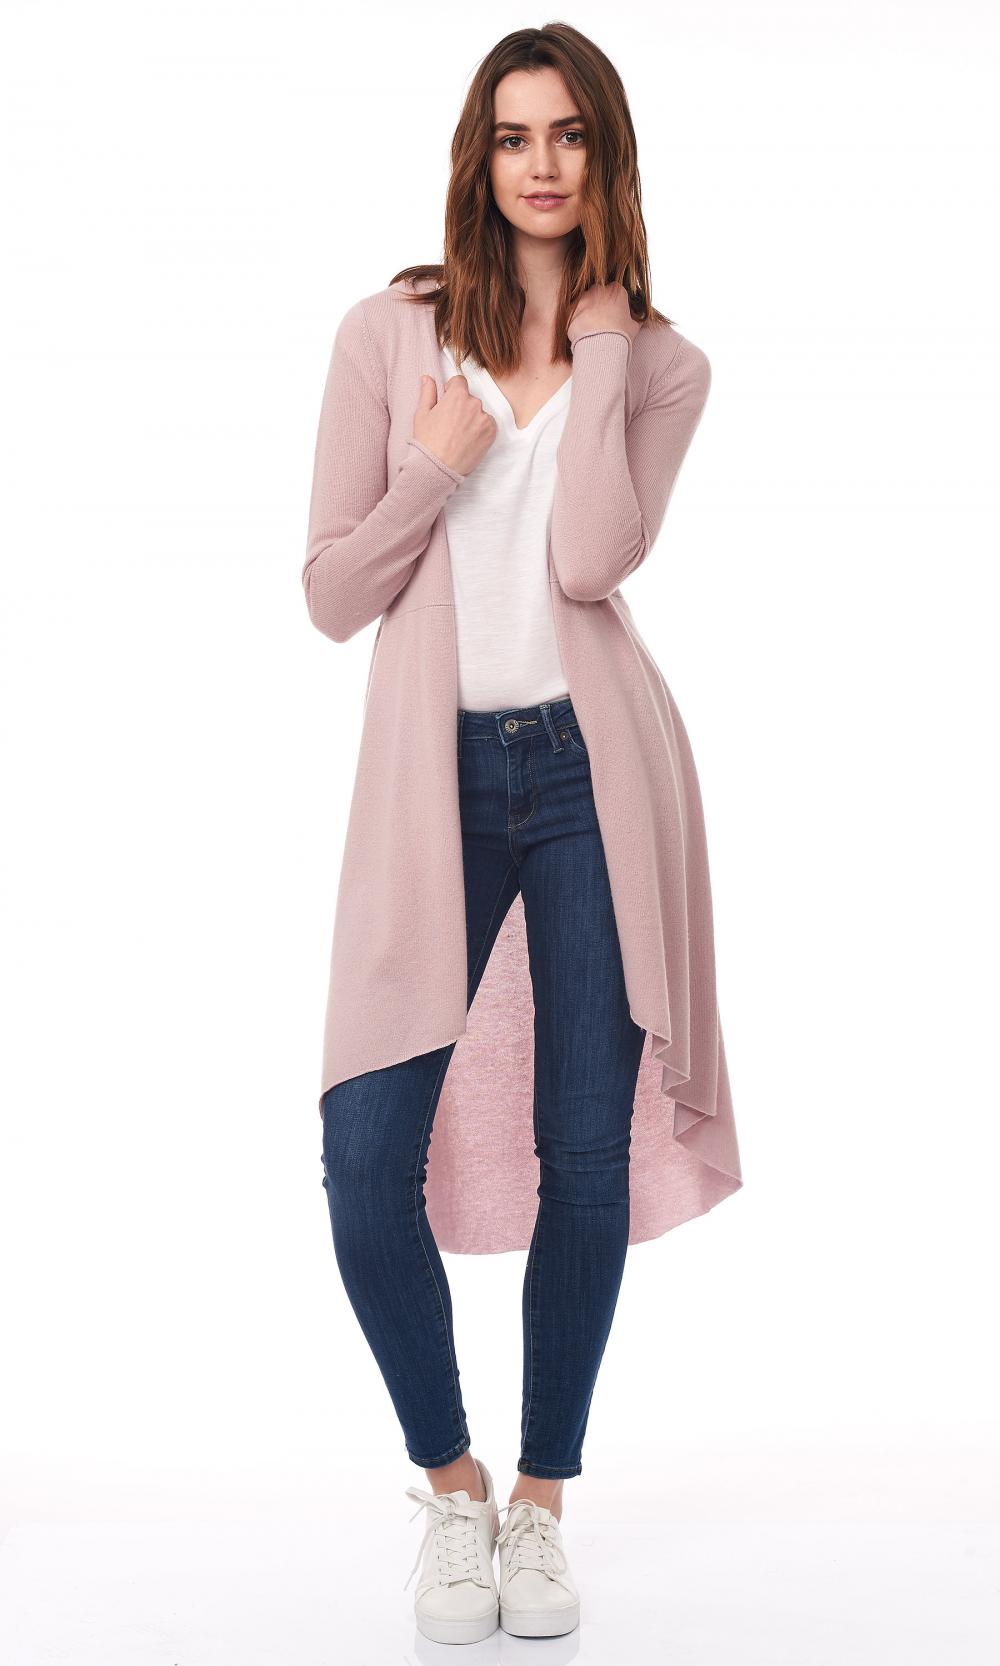 The Ladies Long Cardigan Flamed Duster